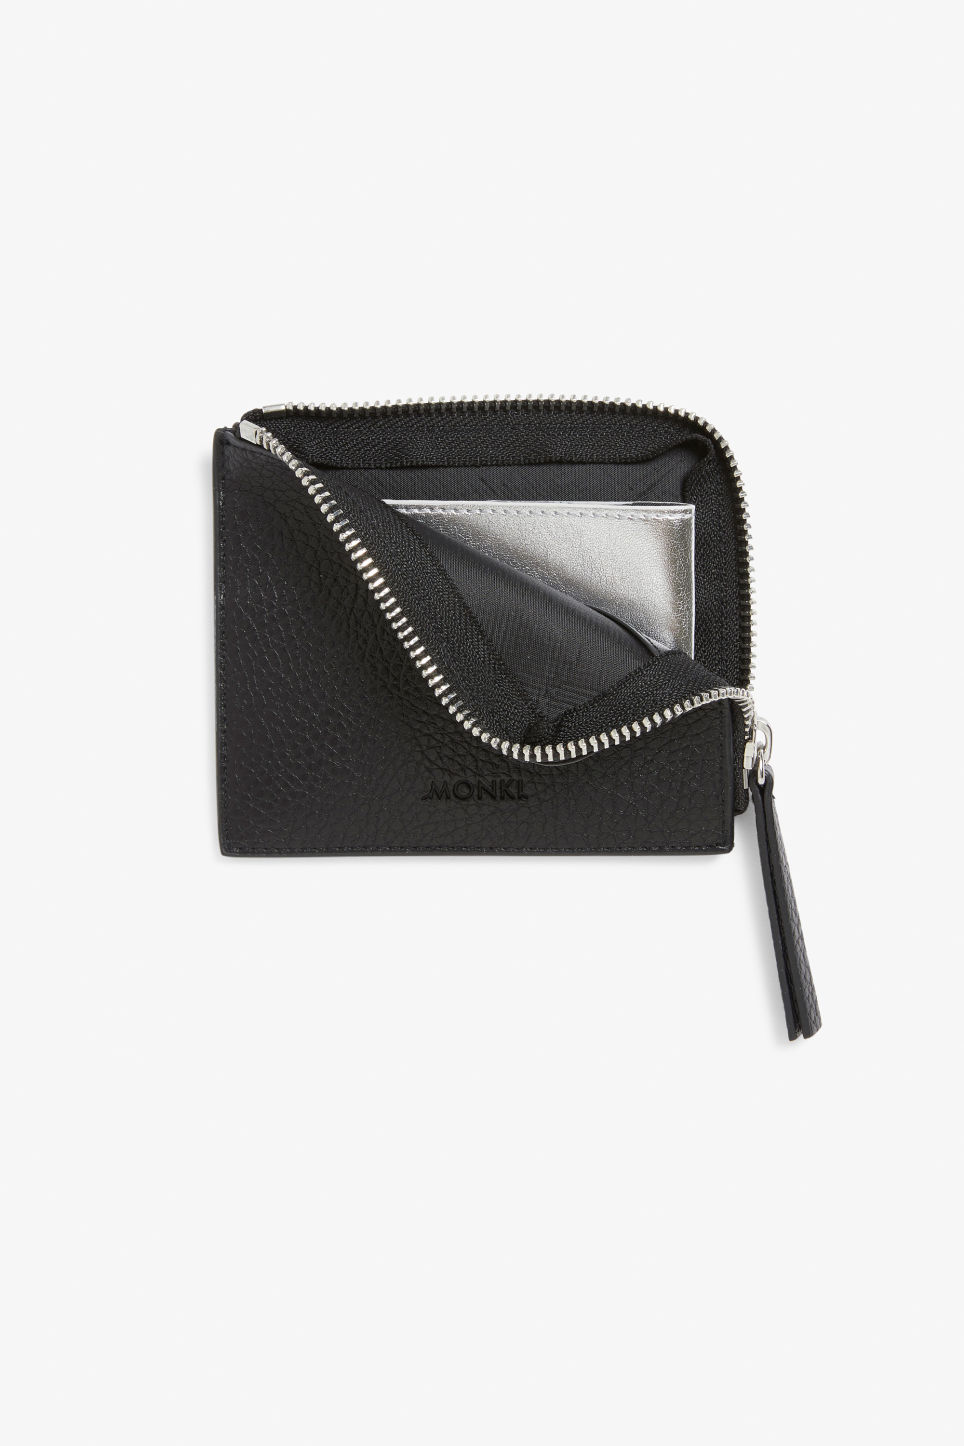 Detailed image of Monki card case in black